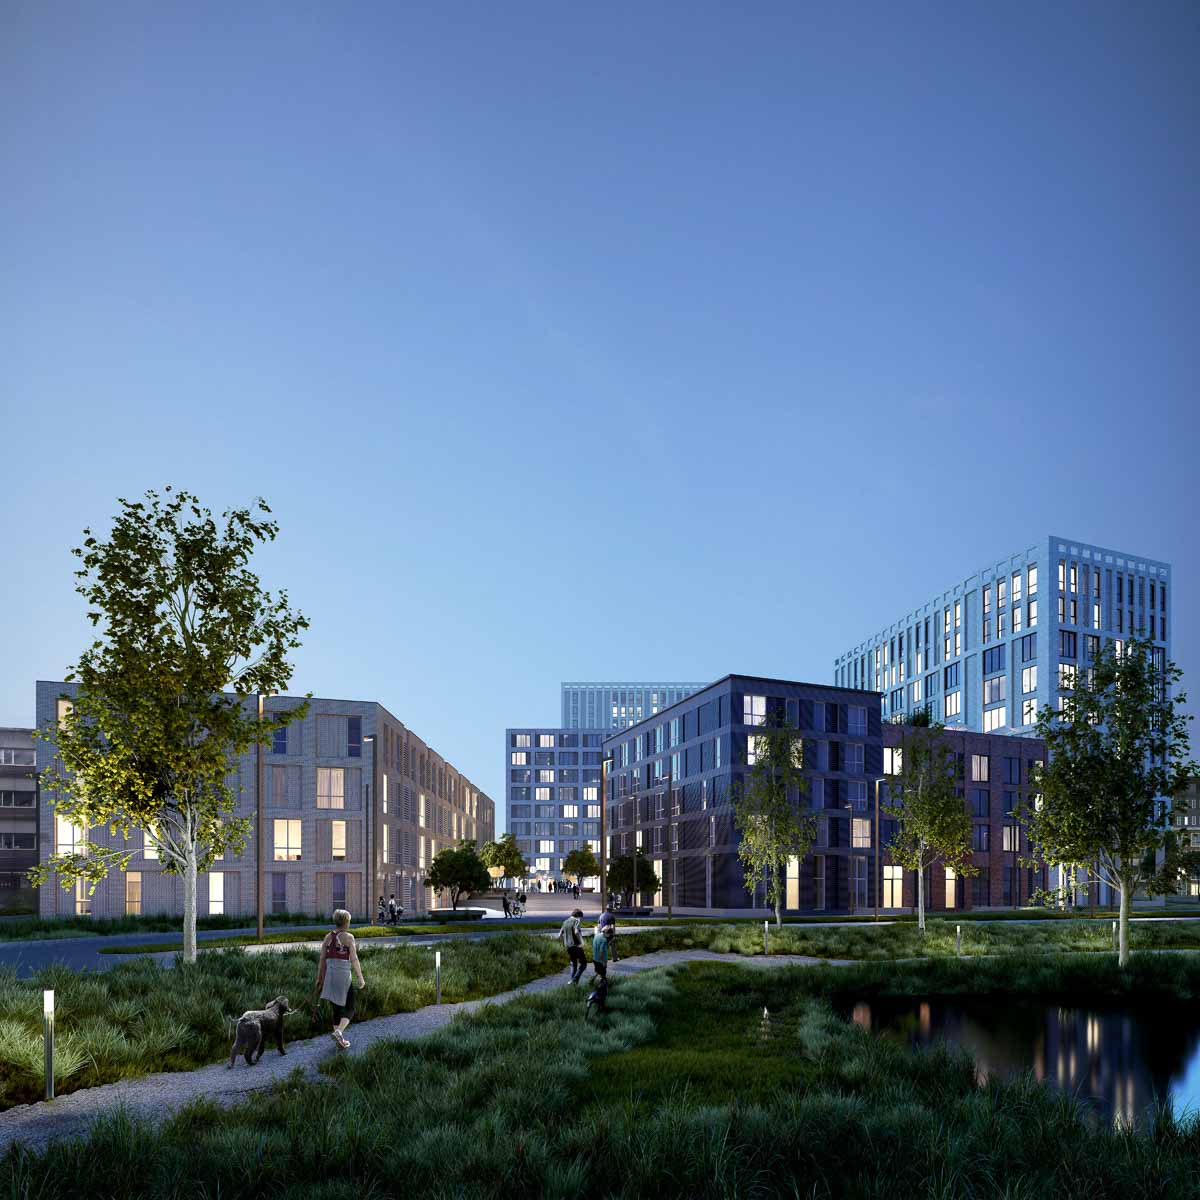 Render of OurDomain Amsterdam Diemen park during the evening with people walking on the sidewalk